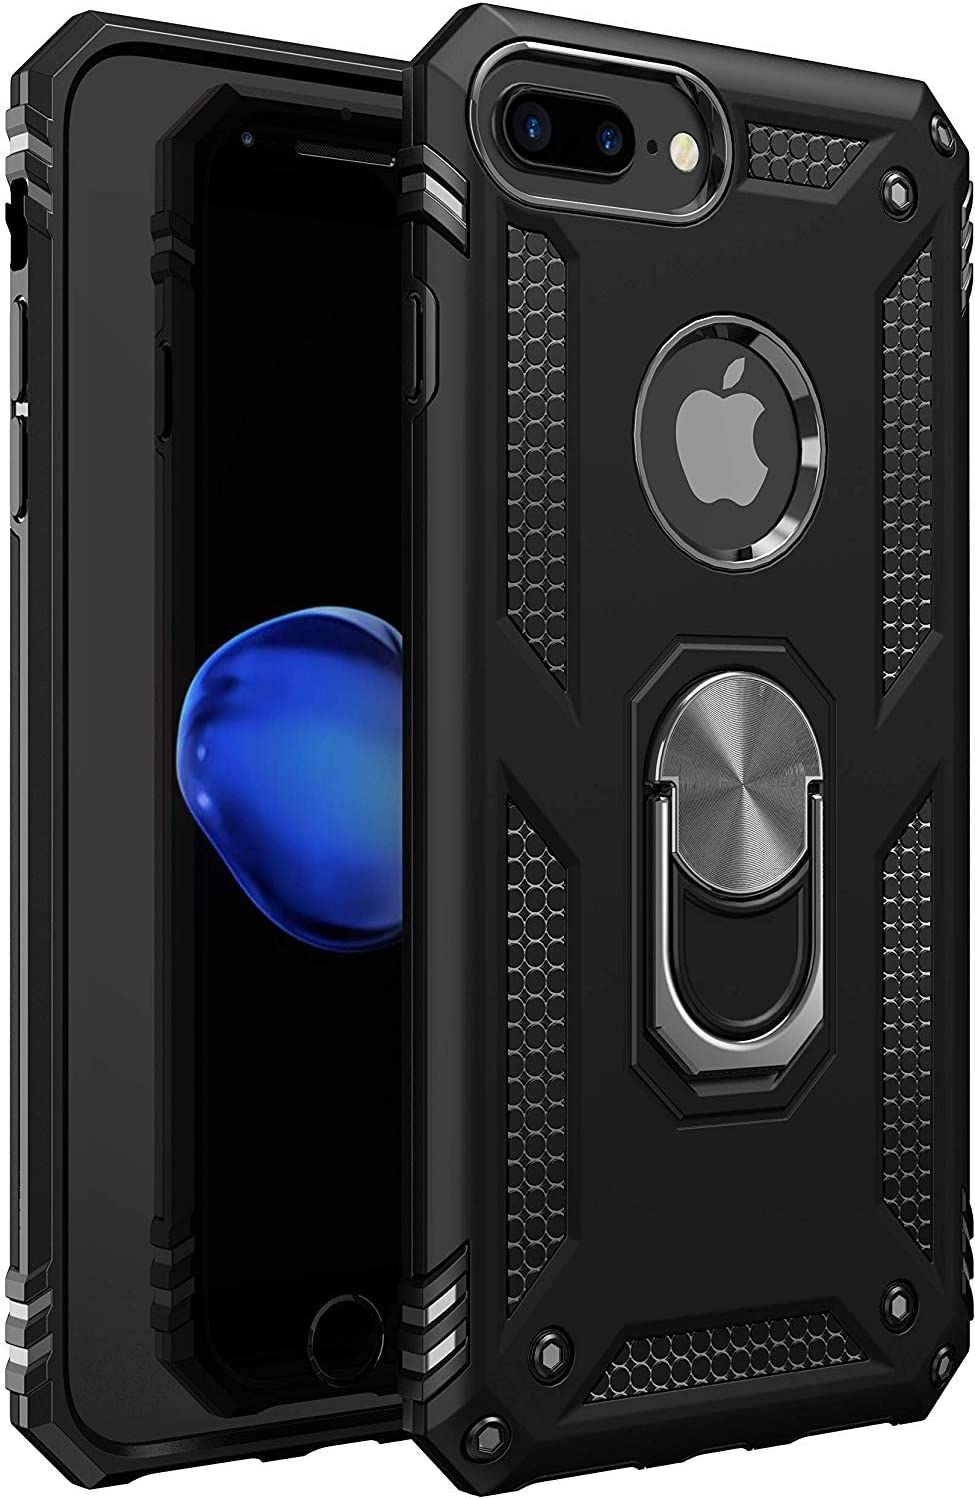 iPhone 7 Plus Case | iPhone 8 Plus Case [ Military Grade ] 15ft. Drop Tested Protective Case | Kickstand | Compatible with Apple iPhone 8Plus / iPhone 7 Plus-Black